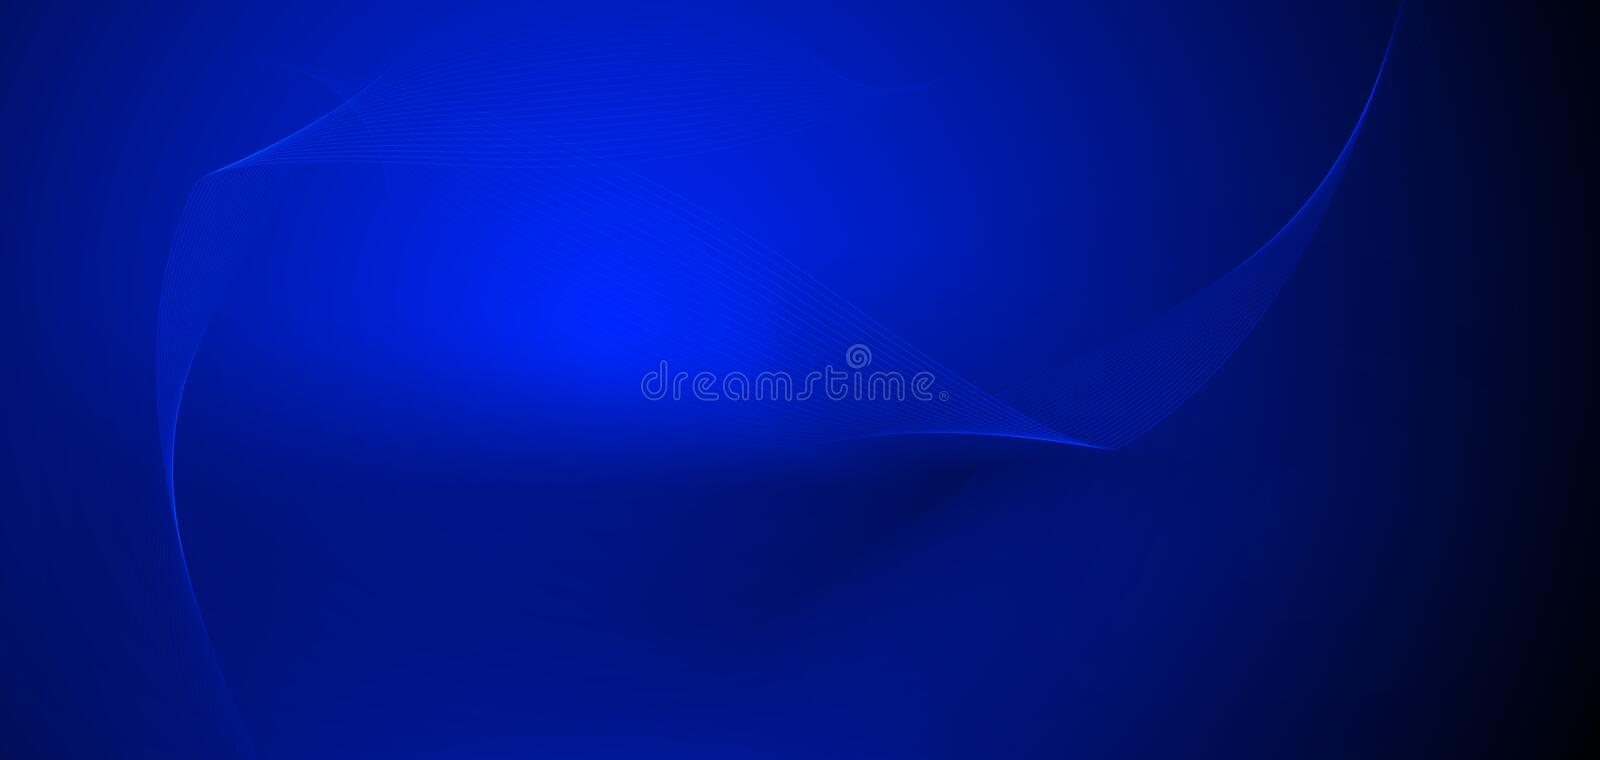 Vector illustration smooth lines in dark blue color background. Hi tech digital technology concept. Abstract futuristic, shiny royalty free illustration